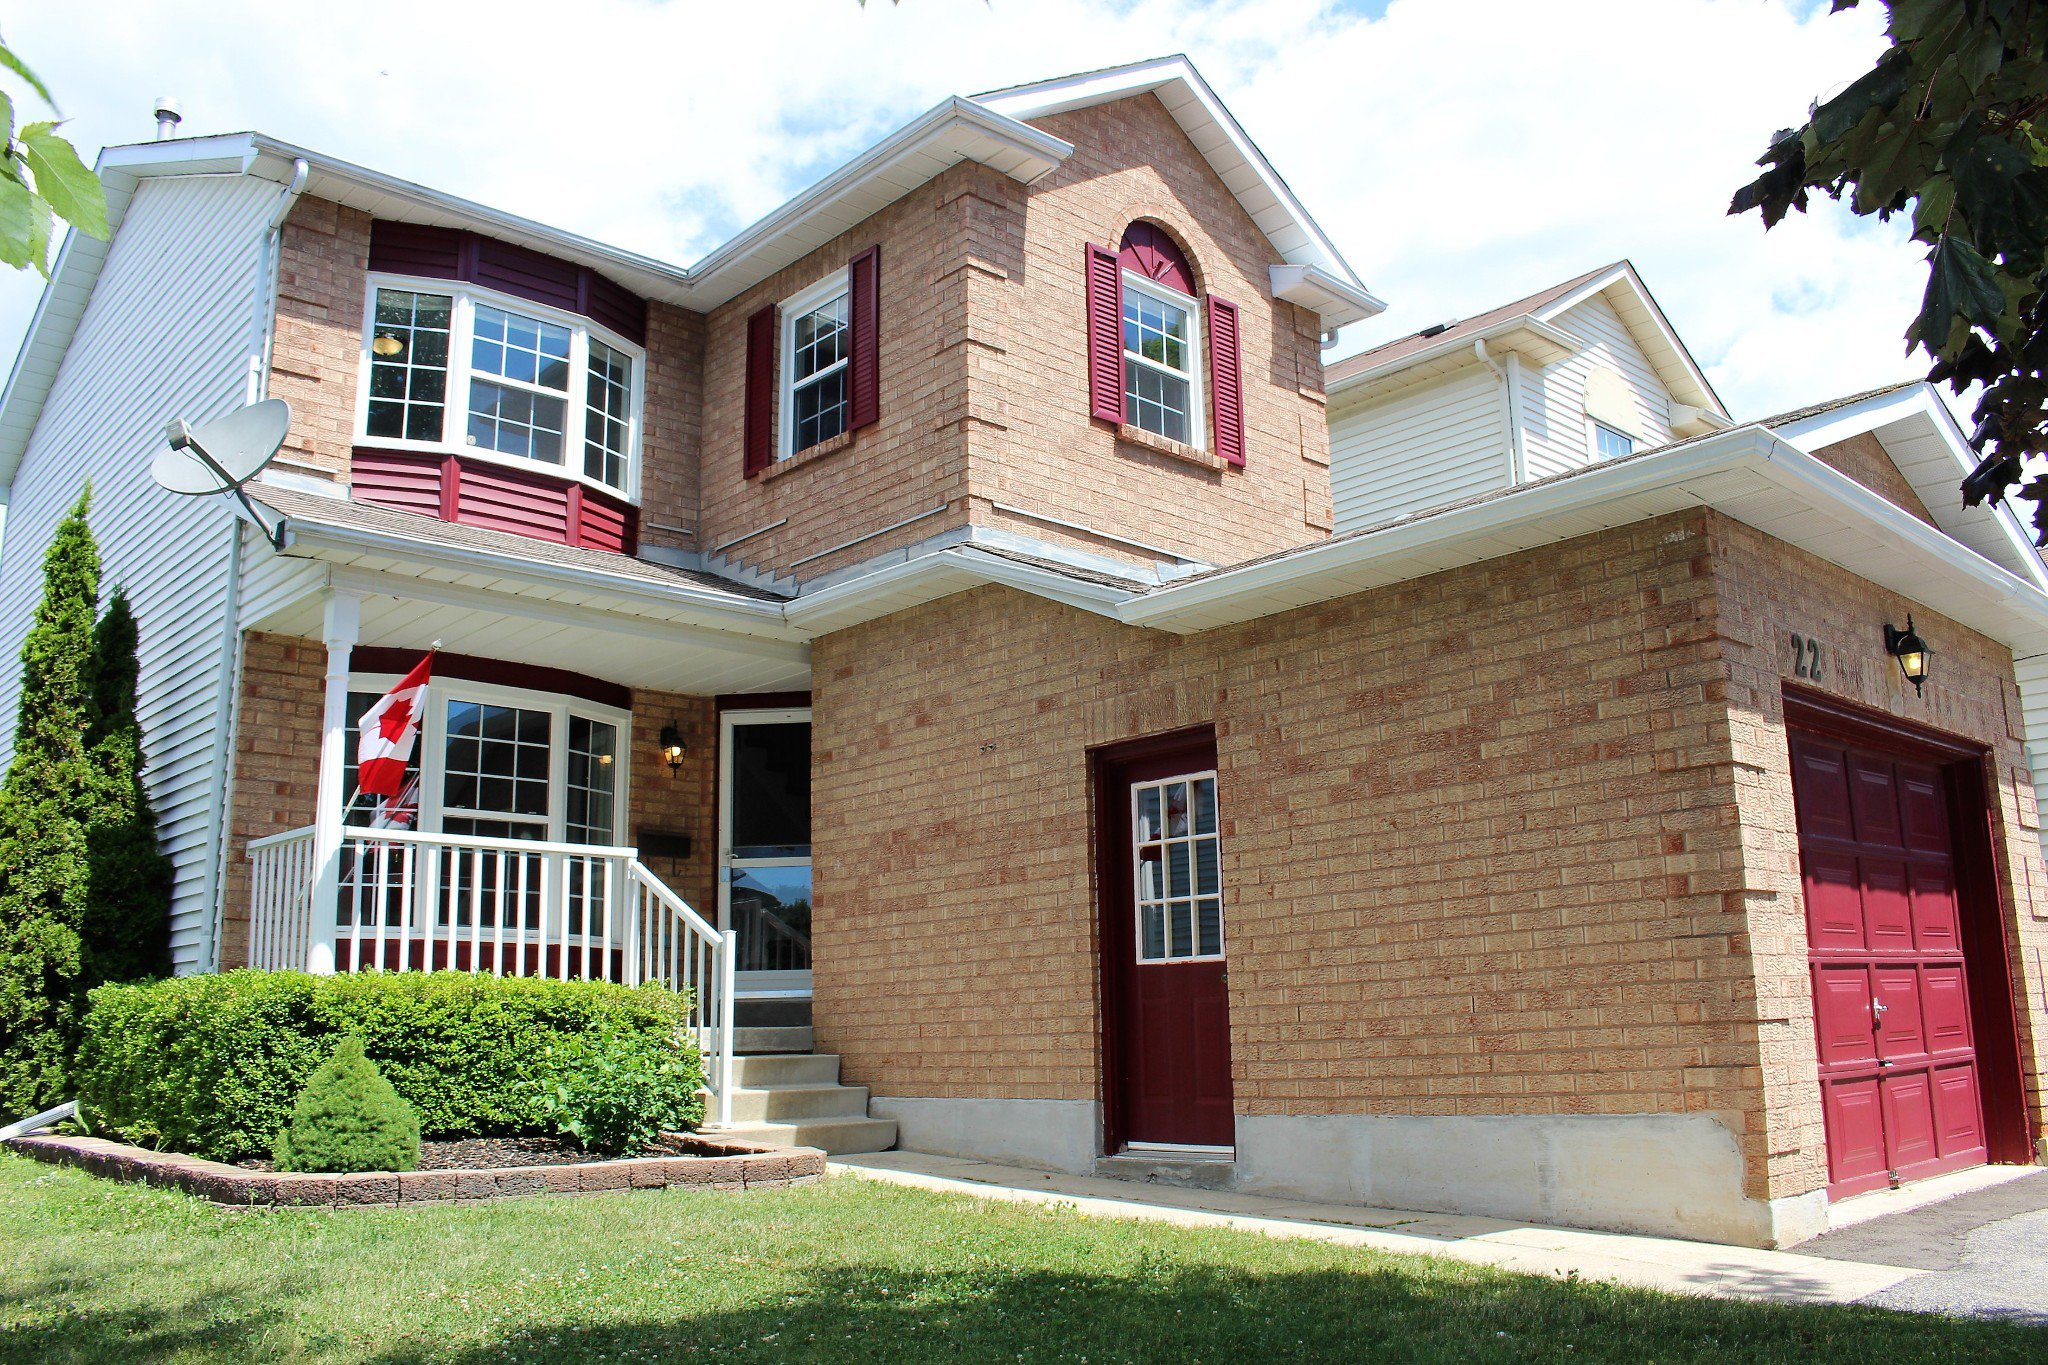 Main Photo: 22 Burnham Boulevard in Cobourg: Residential Detached for sale : MLS®# 275167